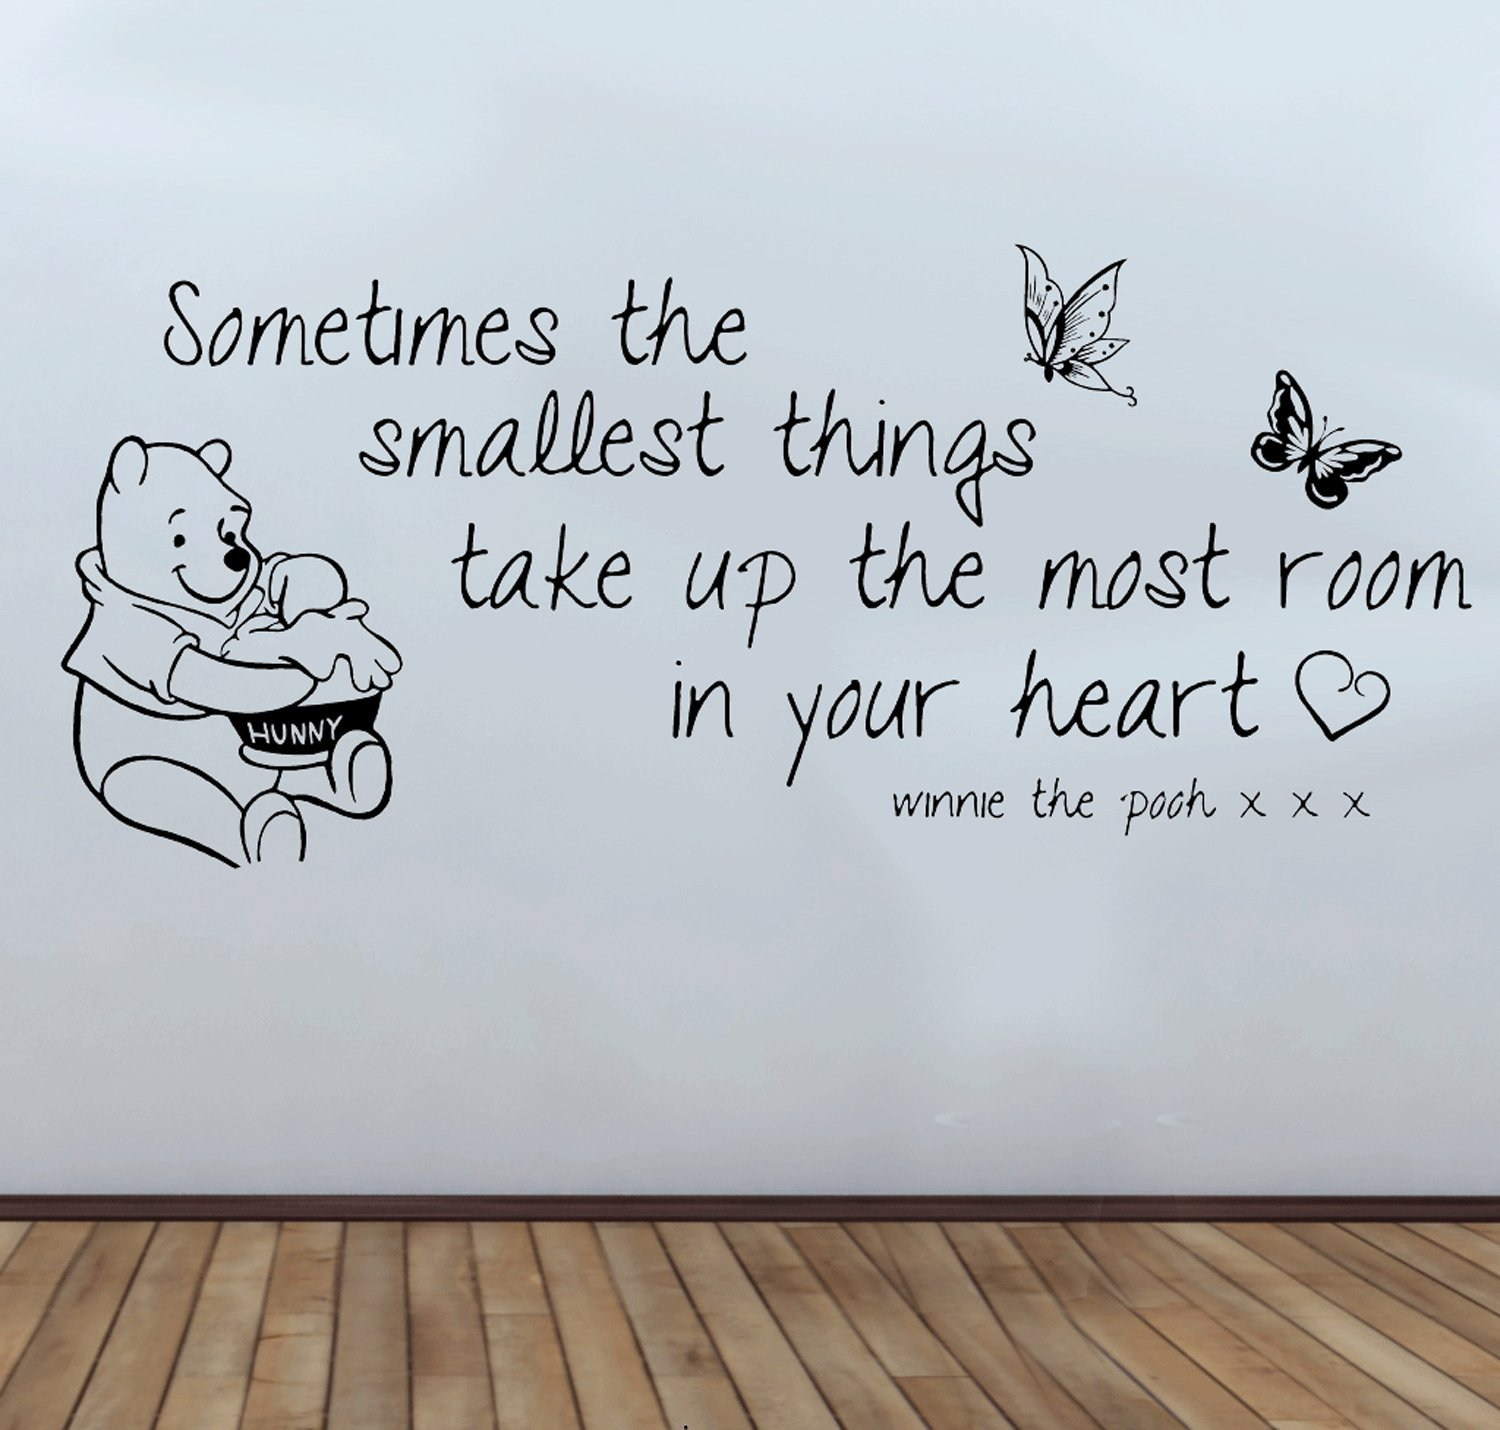 Winnie The Pooh Wall Quote Decal Sticker Large 58 Cm X 125cm: Amazon.co.uk:  Kitchen U0026 Home Part 70